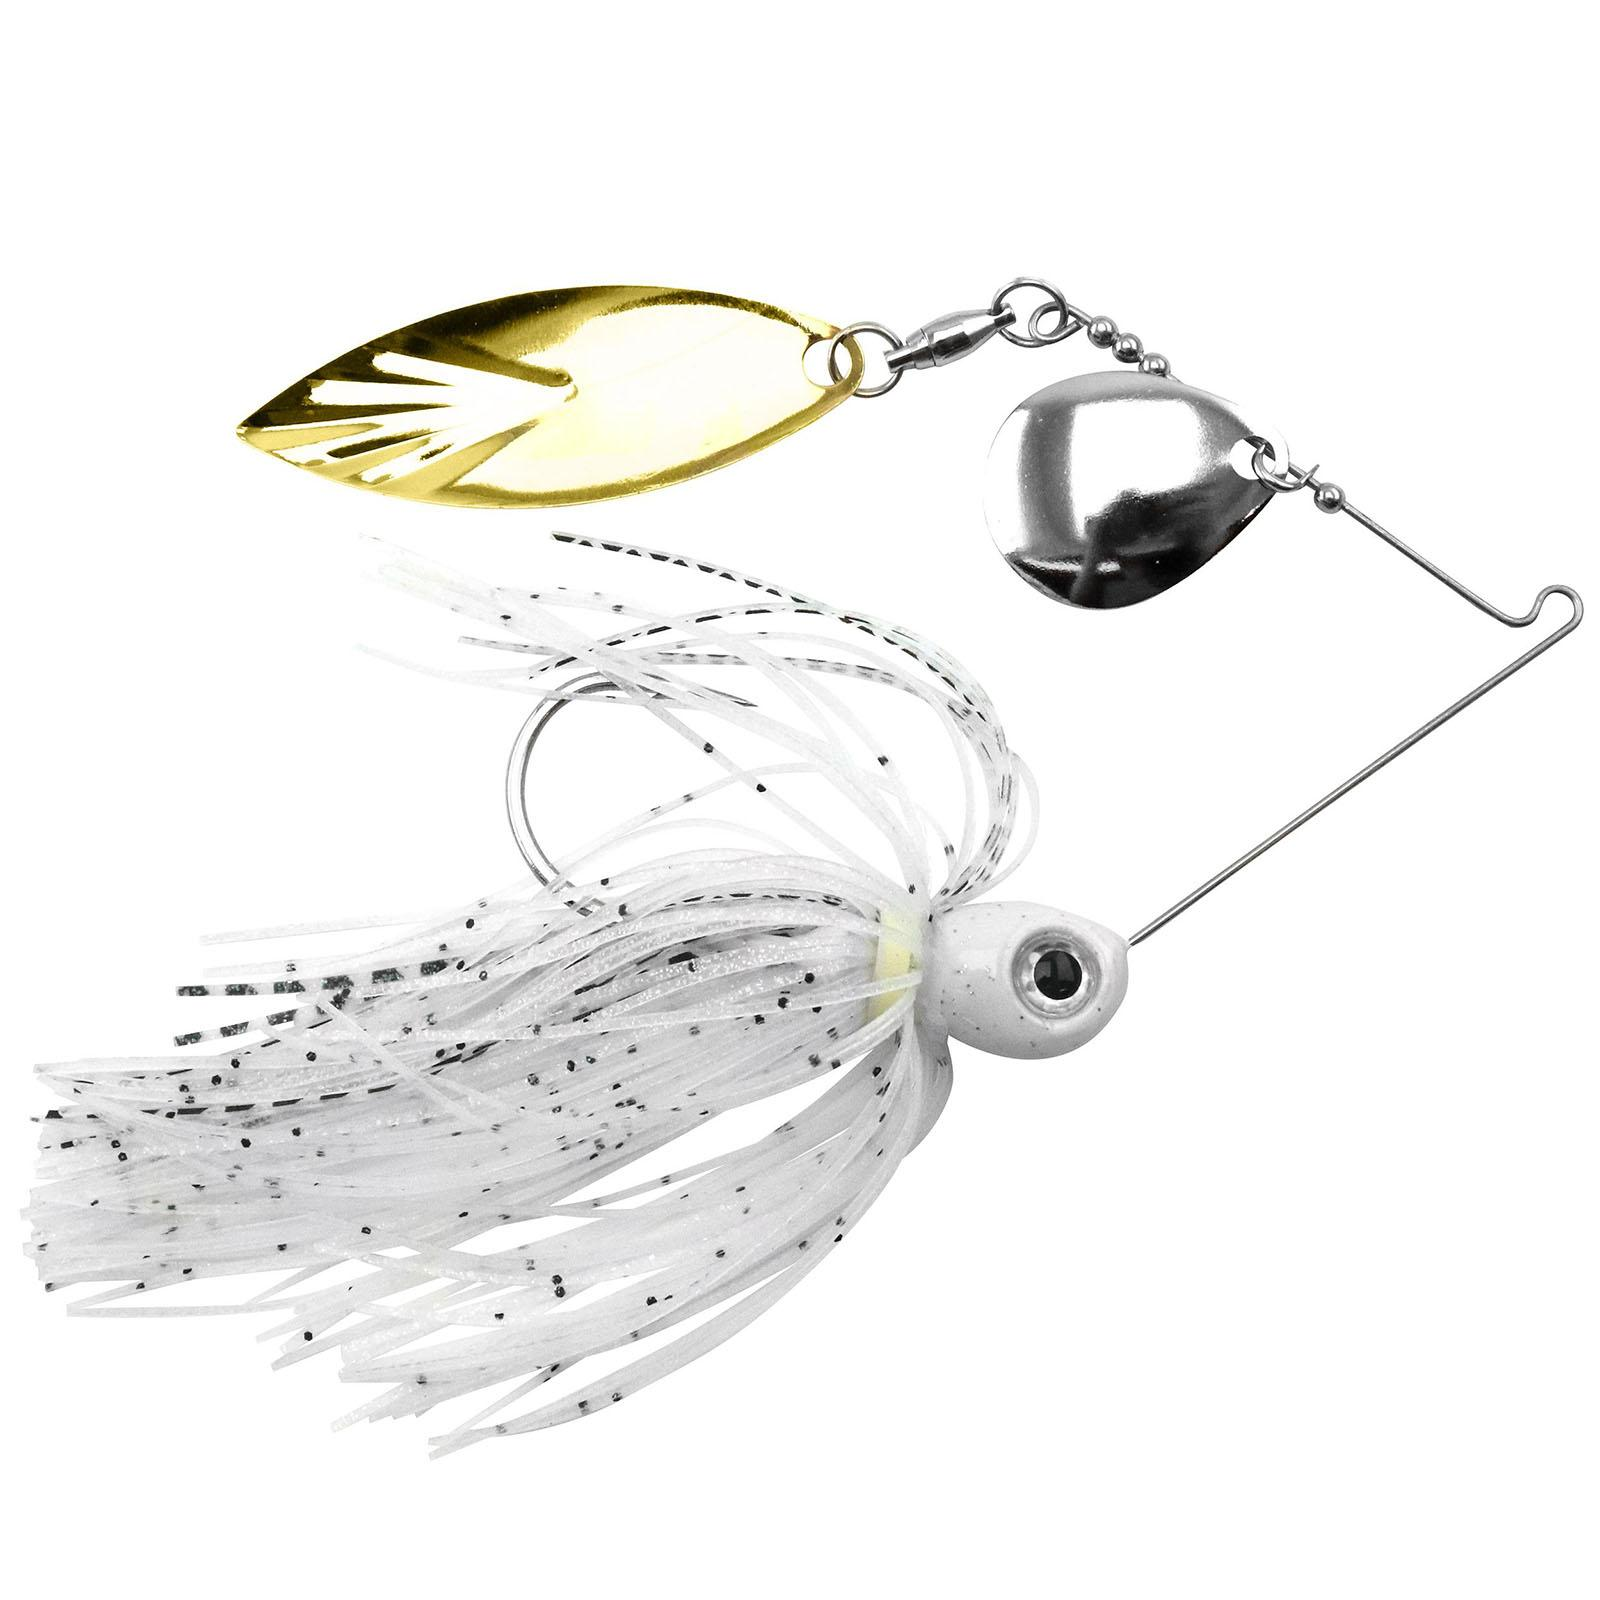 Accent River Special Colorado / Willow Spinnerbait Color Nickel/Gold Blade - Crystal White Shad Skirt Weight 1/4 oz thumbnail